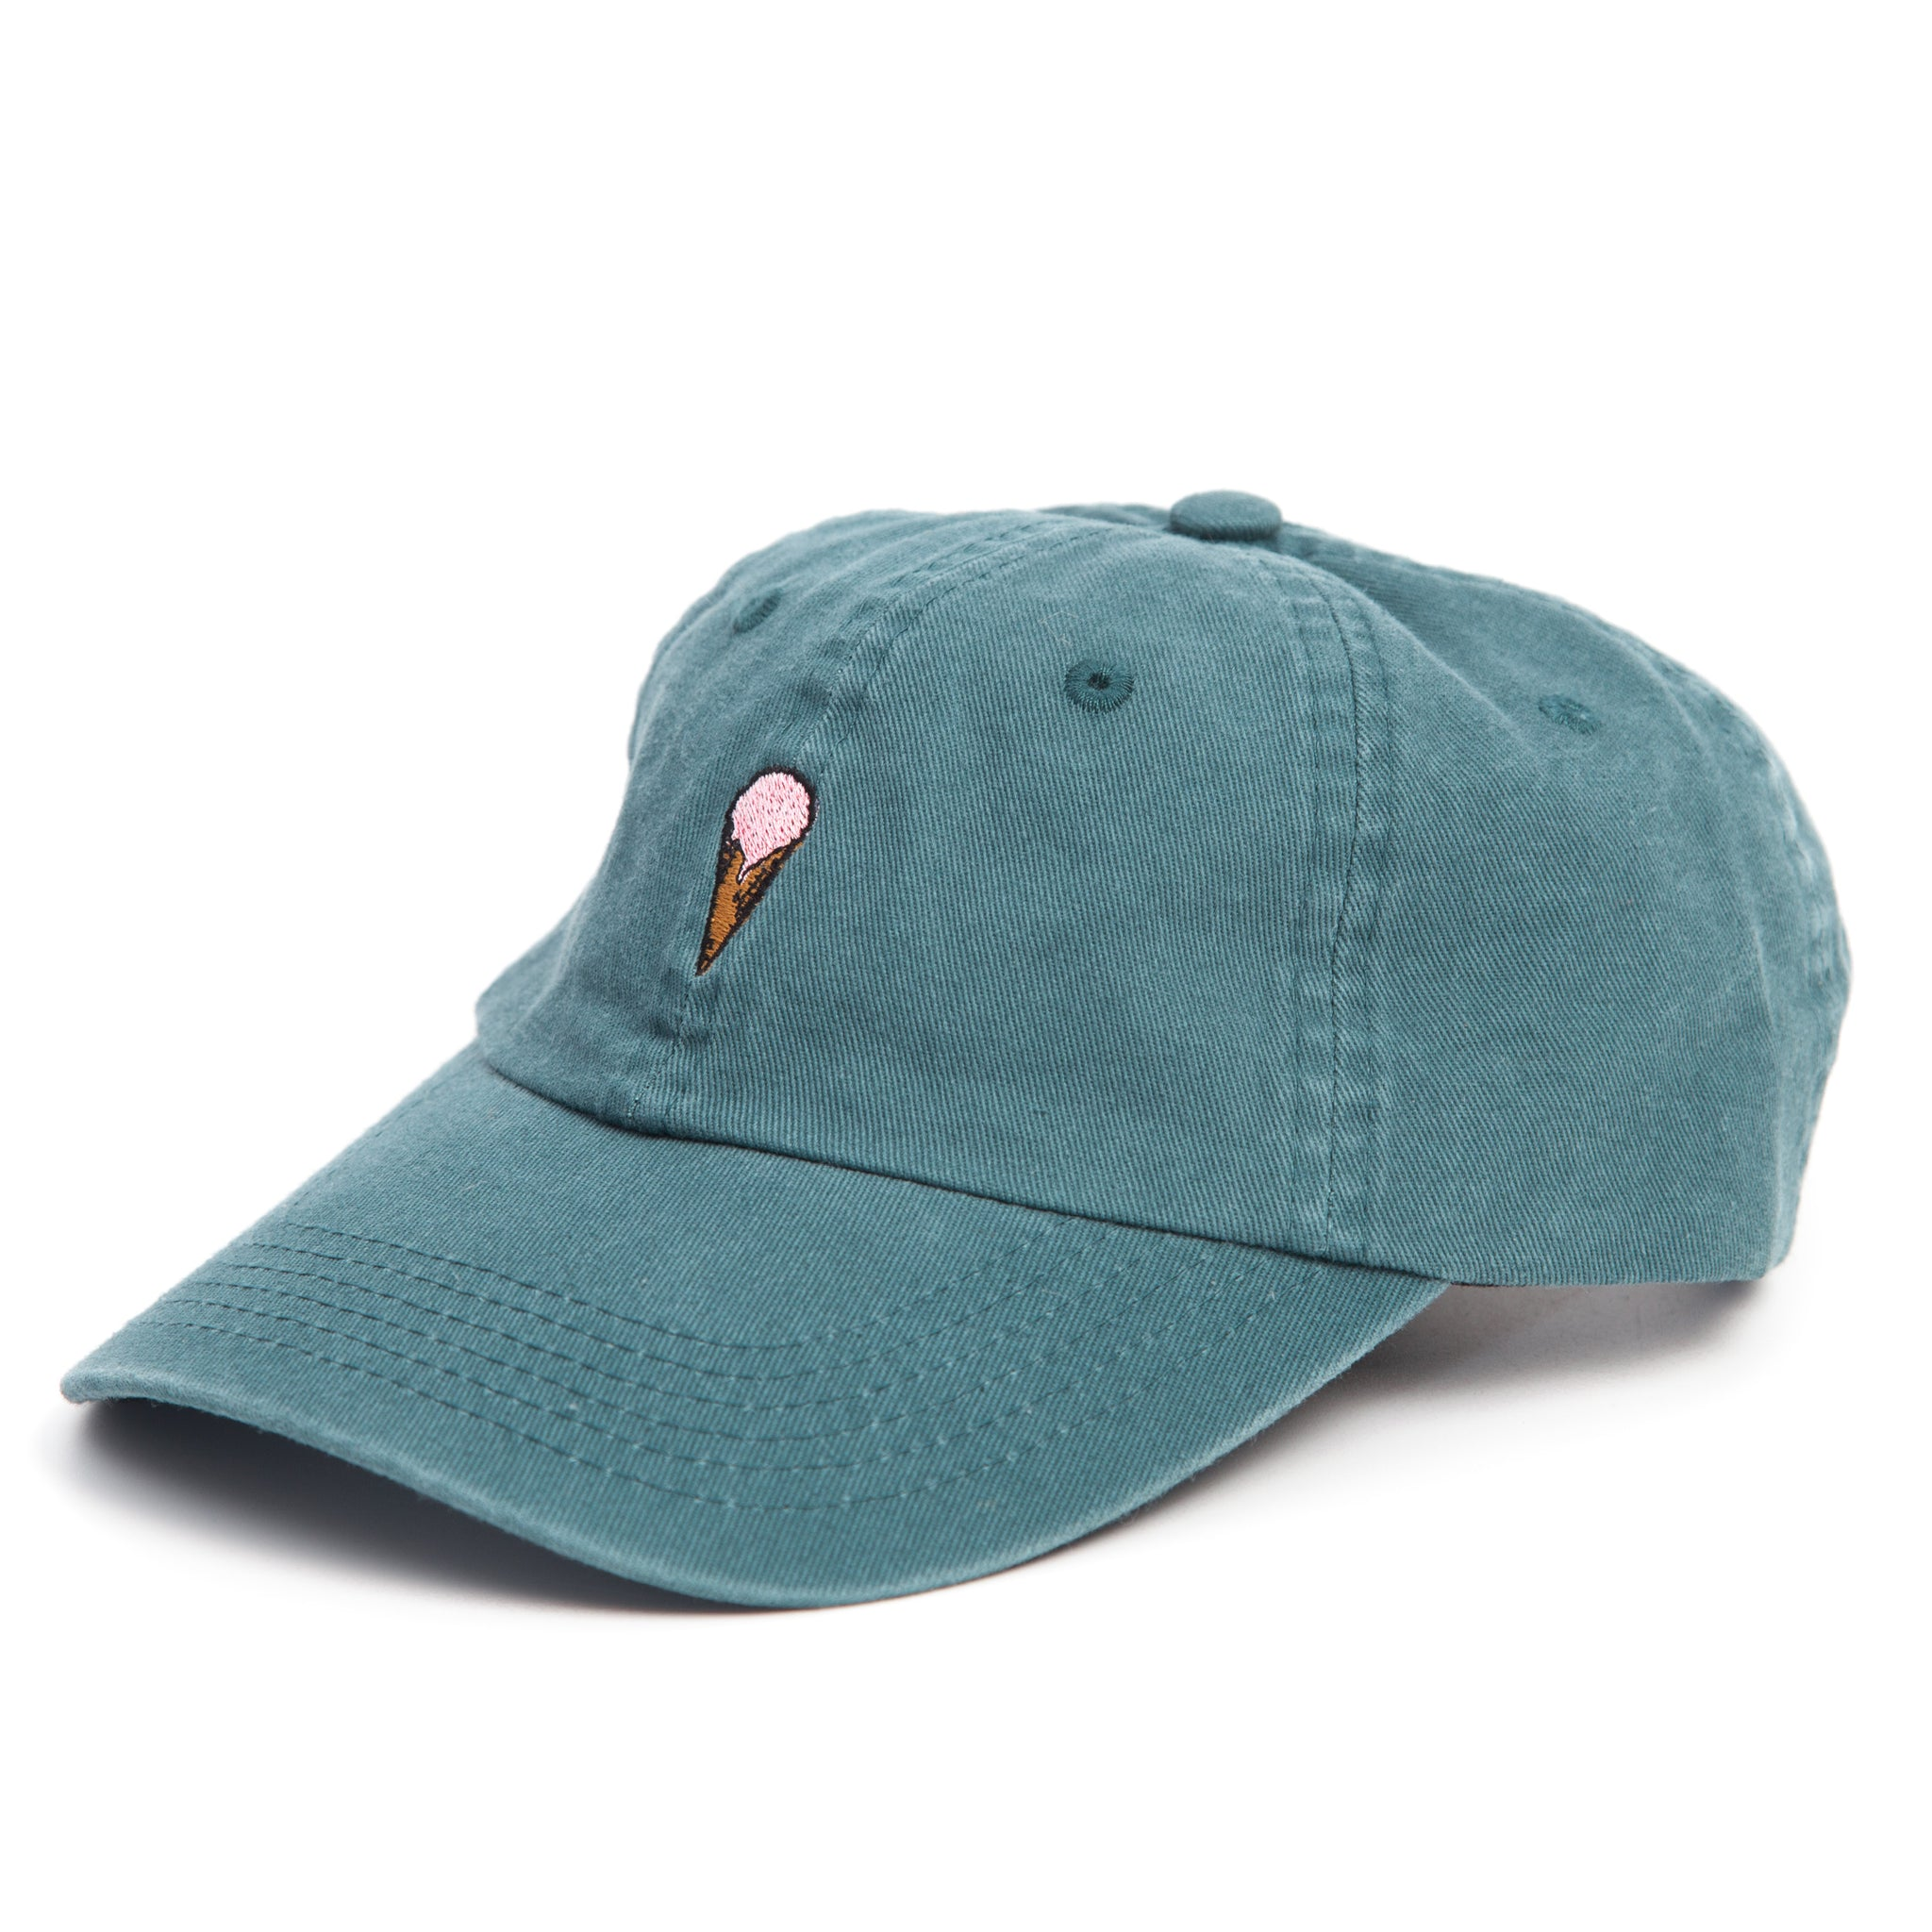 Teal Dad Cap // Just Chillin'